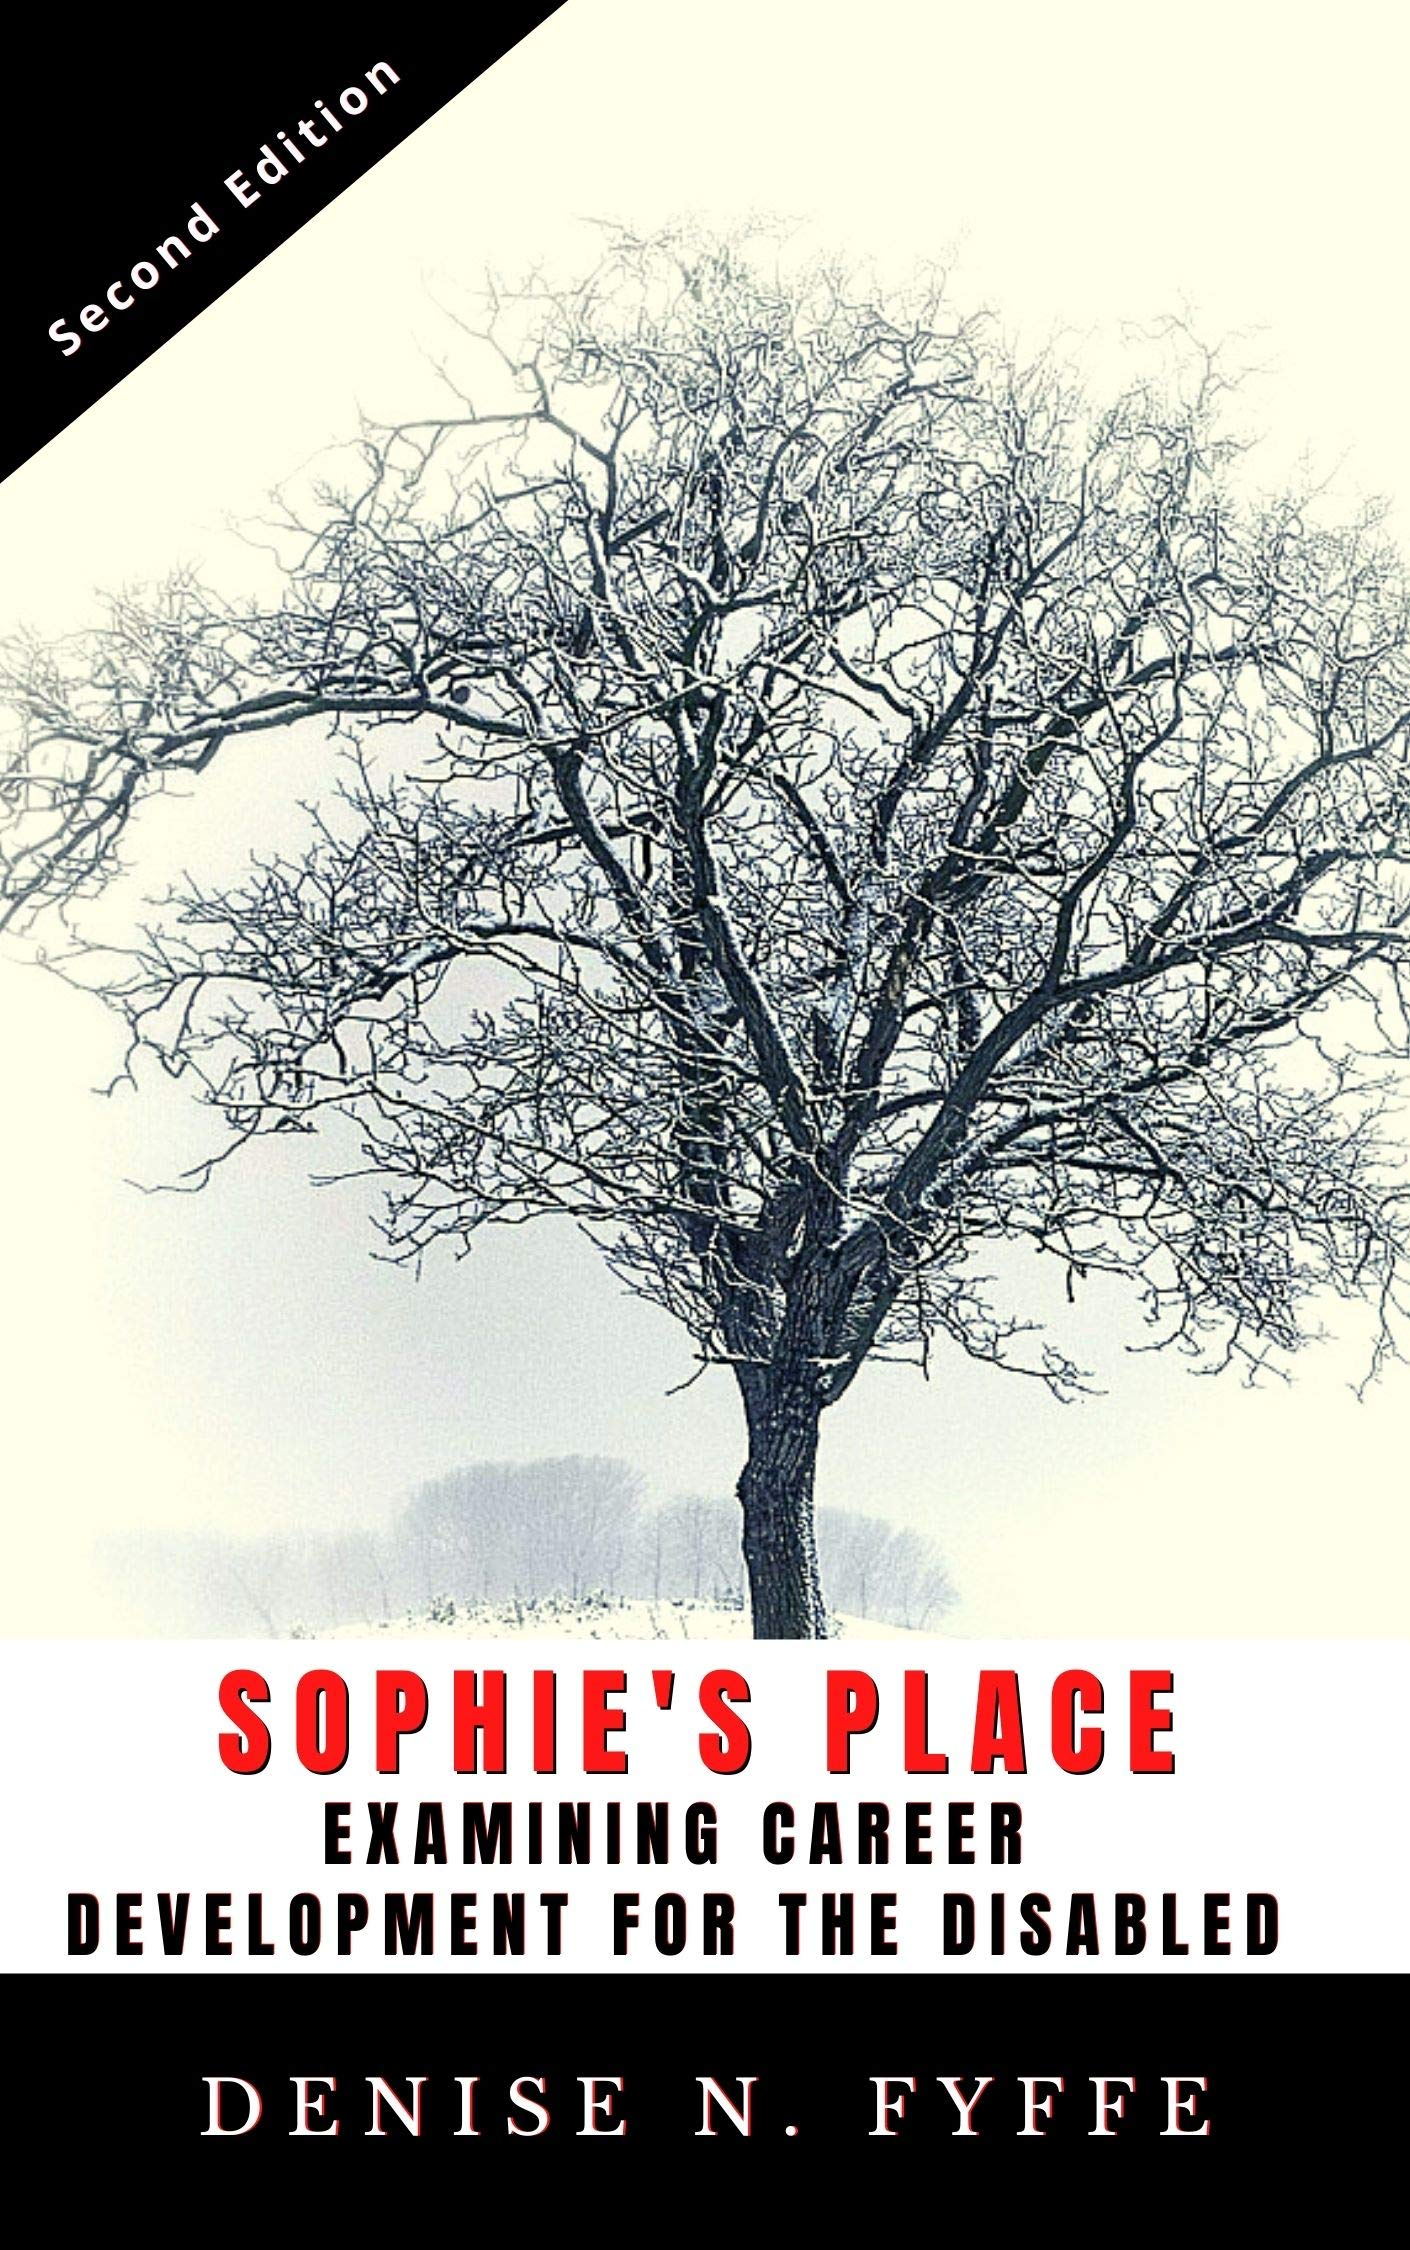 Sophie's Place: Examining Career Development for the Disabled